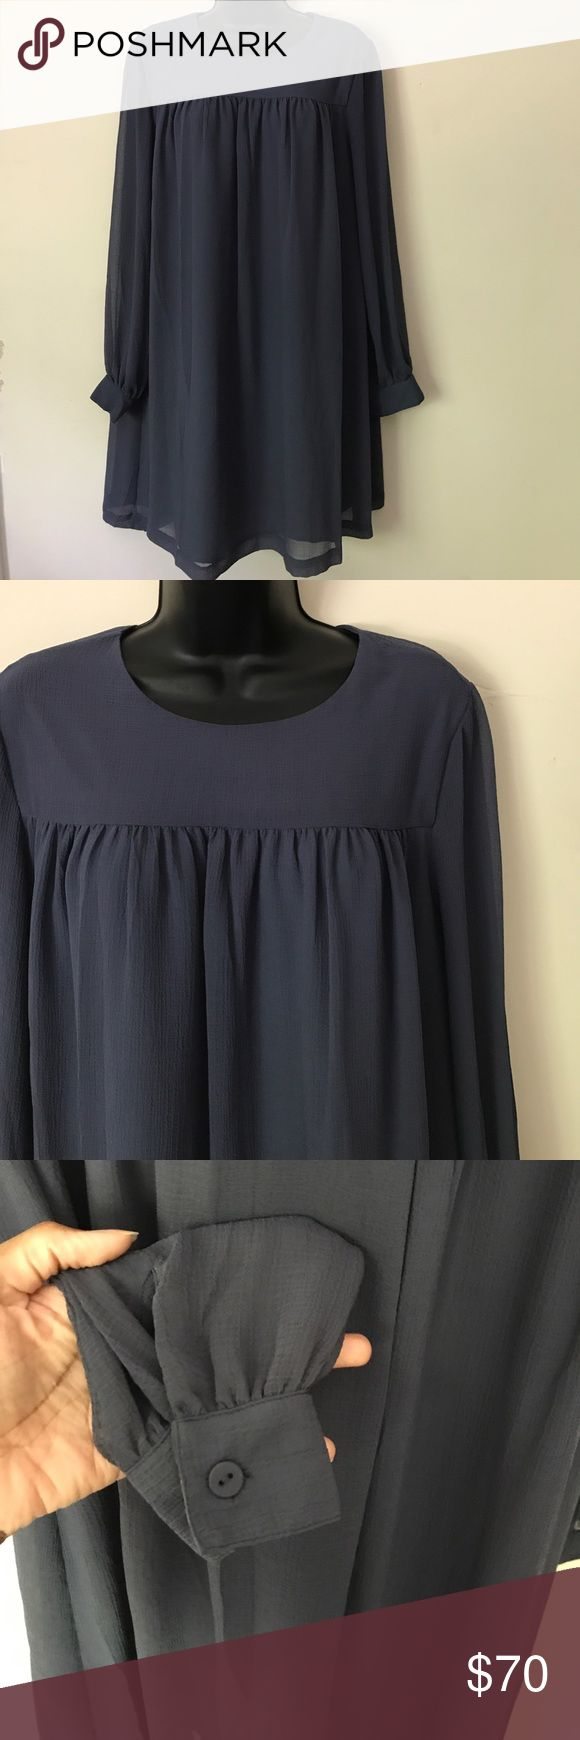 W118 Walter Baker Gwenith Dress In Cobalt Blue W118 Walter Baker Gwenith Dress In Cobalt Blue. Shift Dress.  Lined Interior. 100% Polyester Material. W118 by Walter Baker Dresses Midi